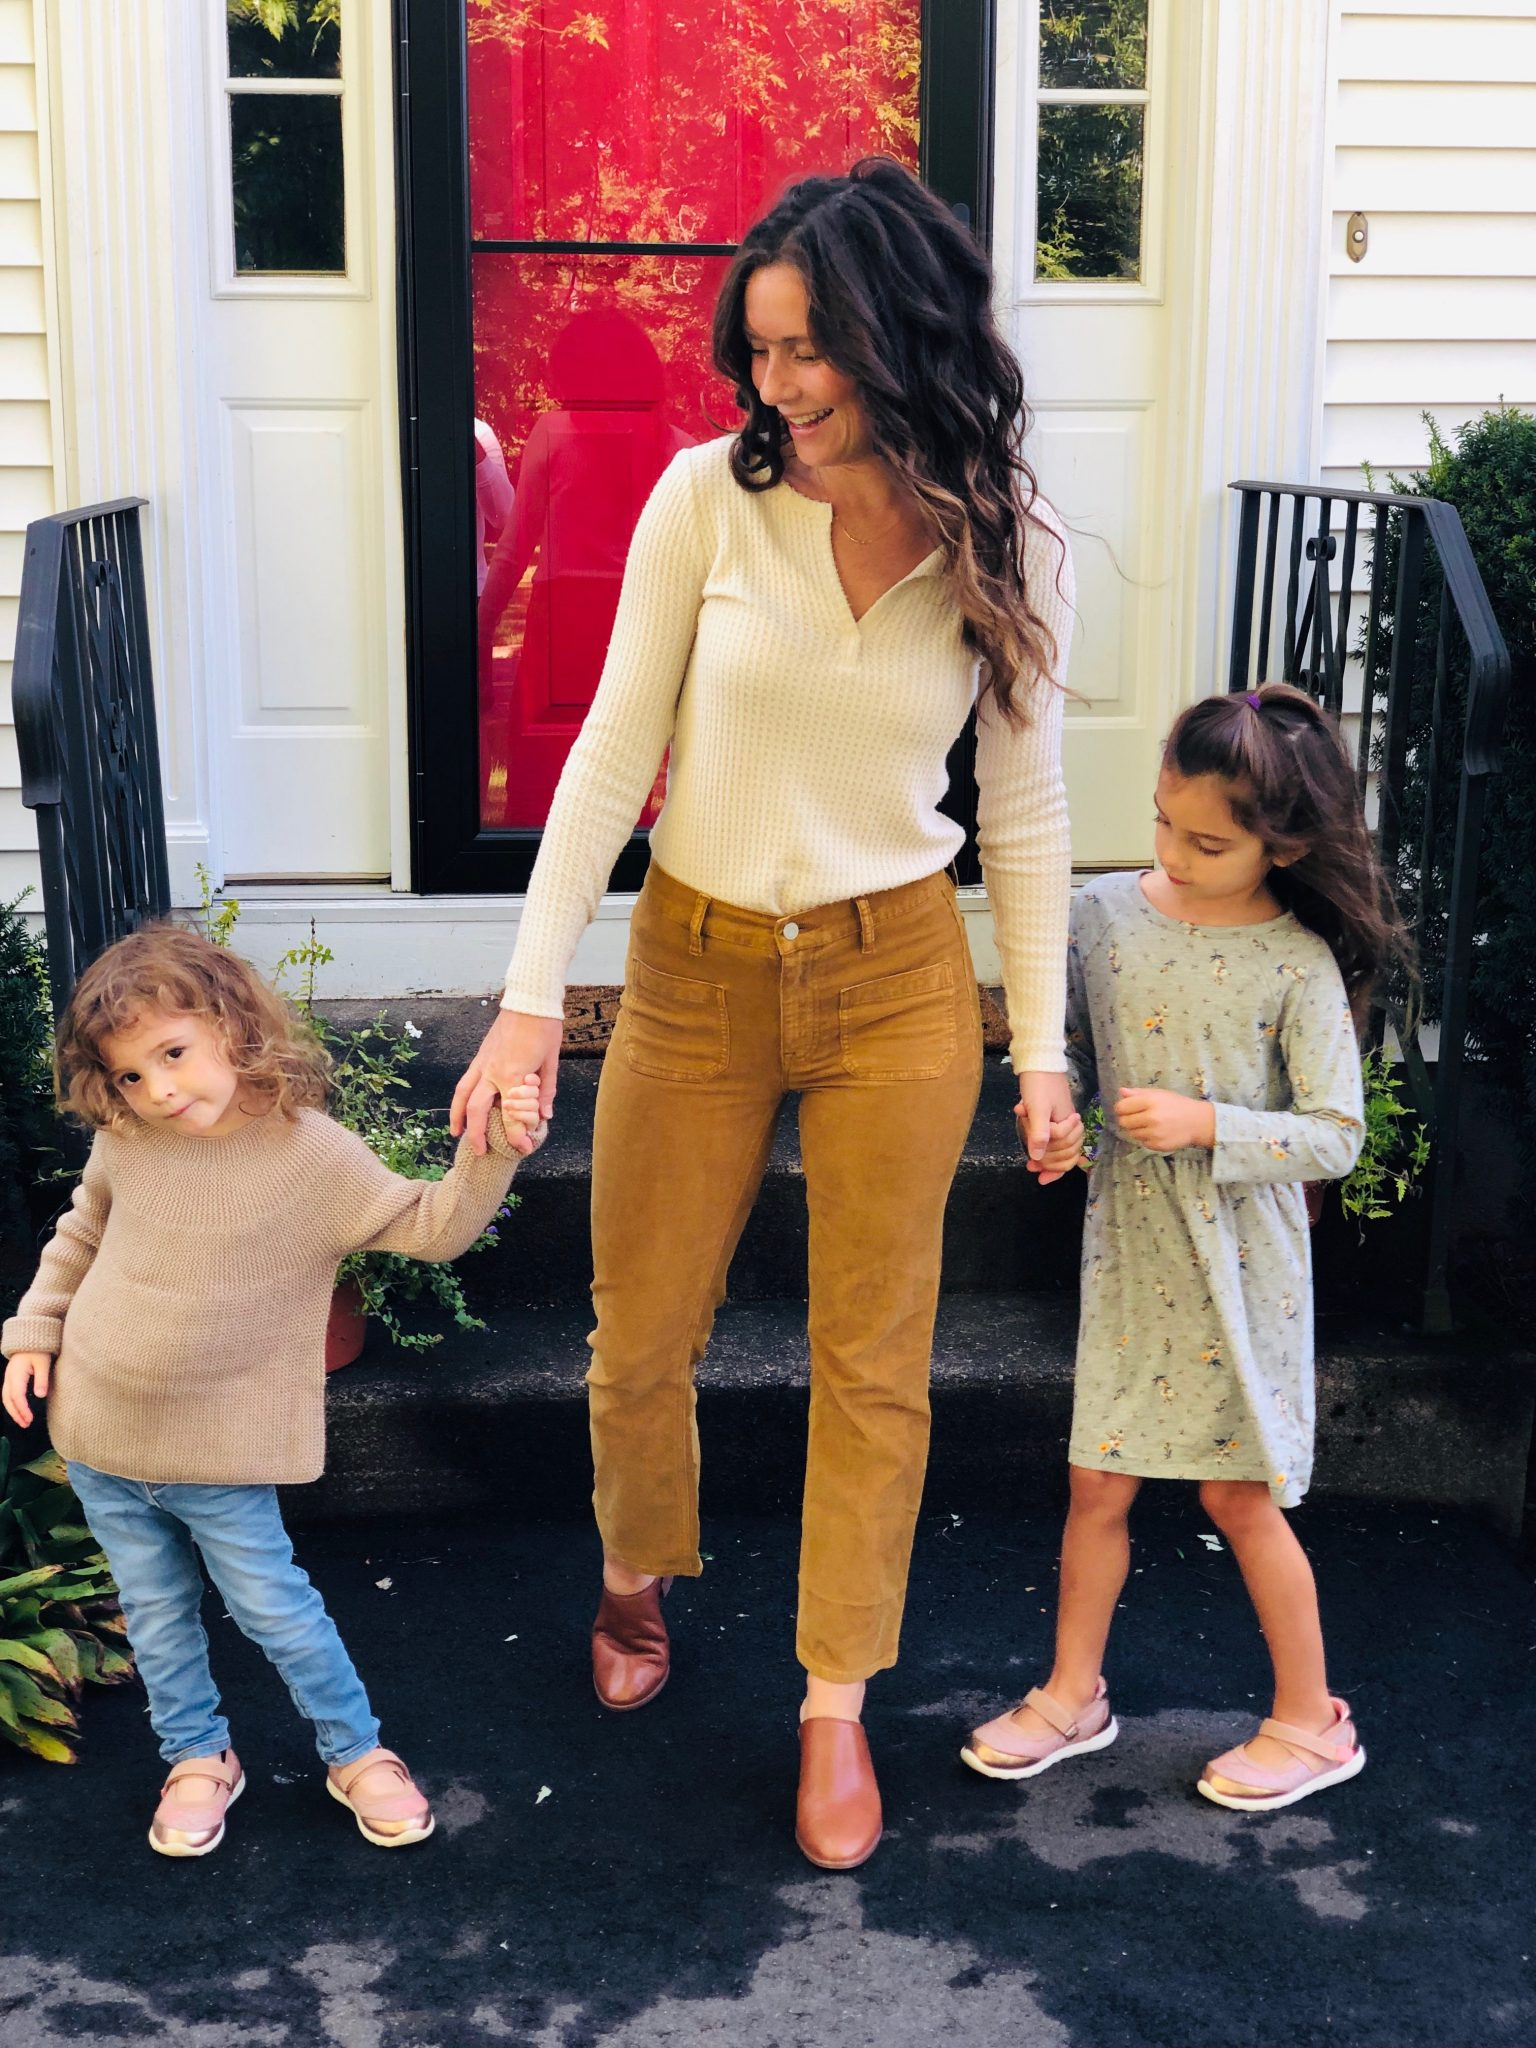 Mom and Kids in Fall Clothes